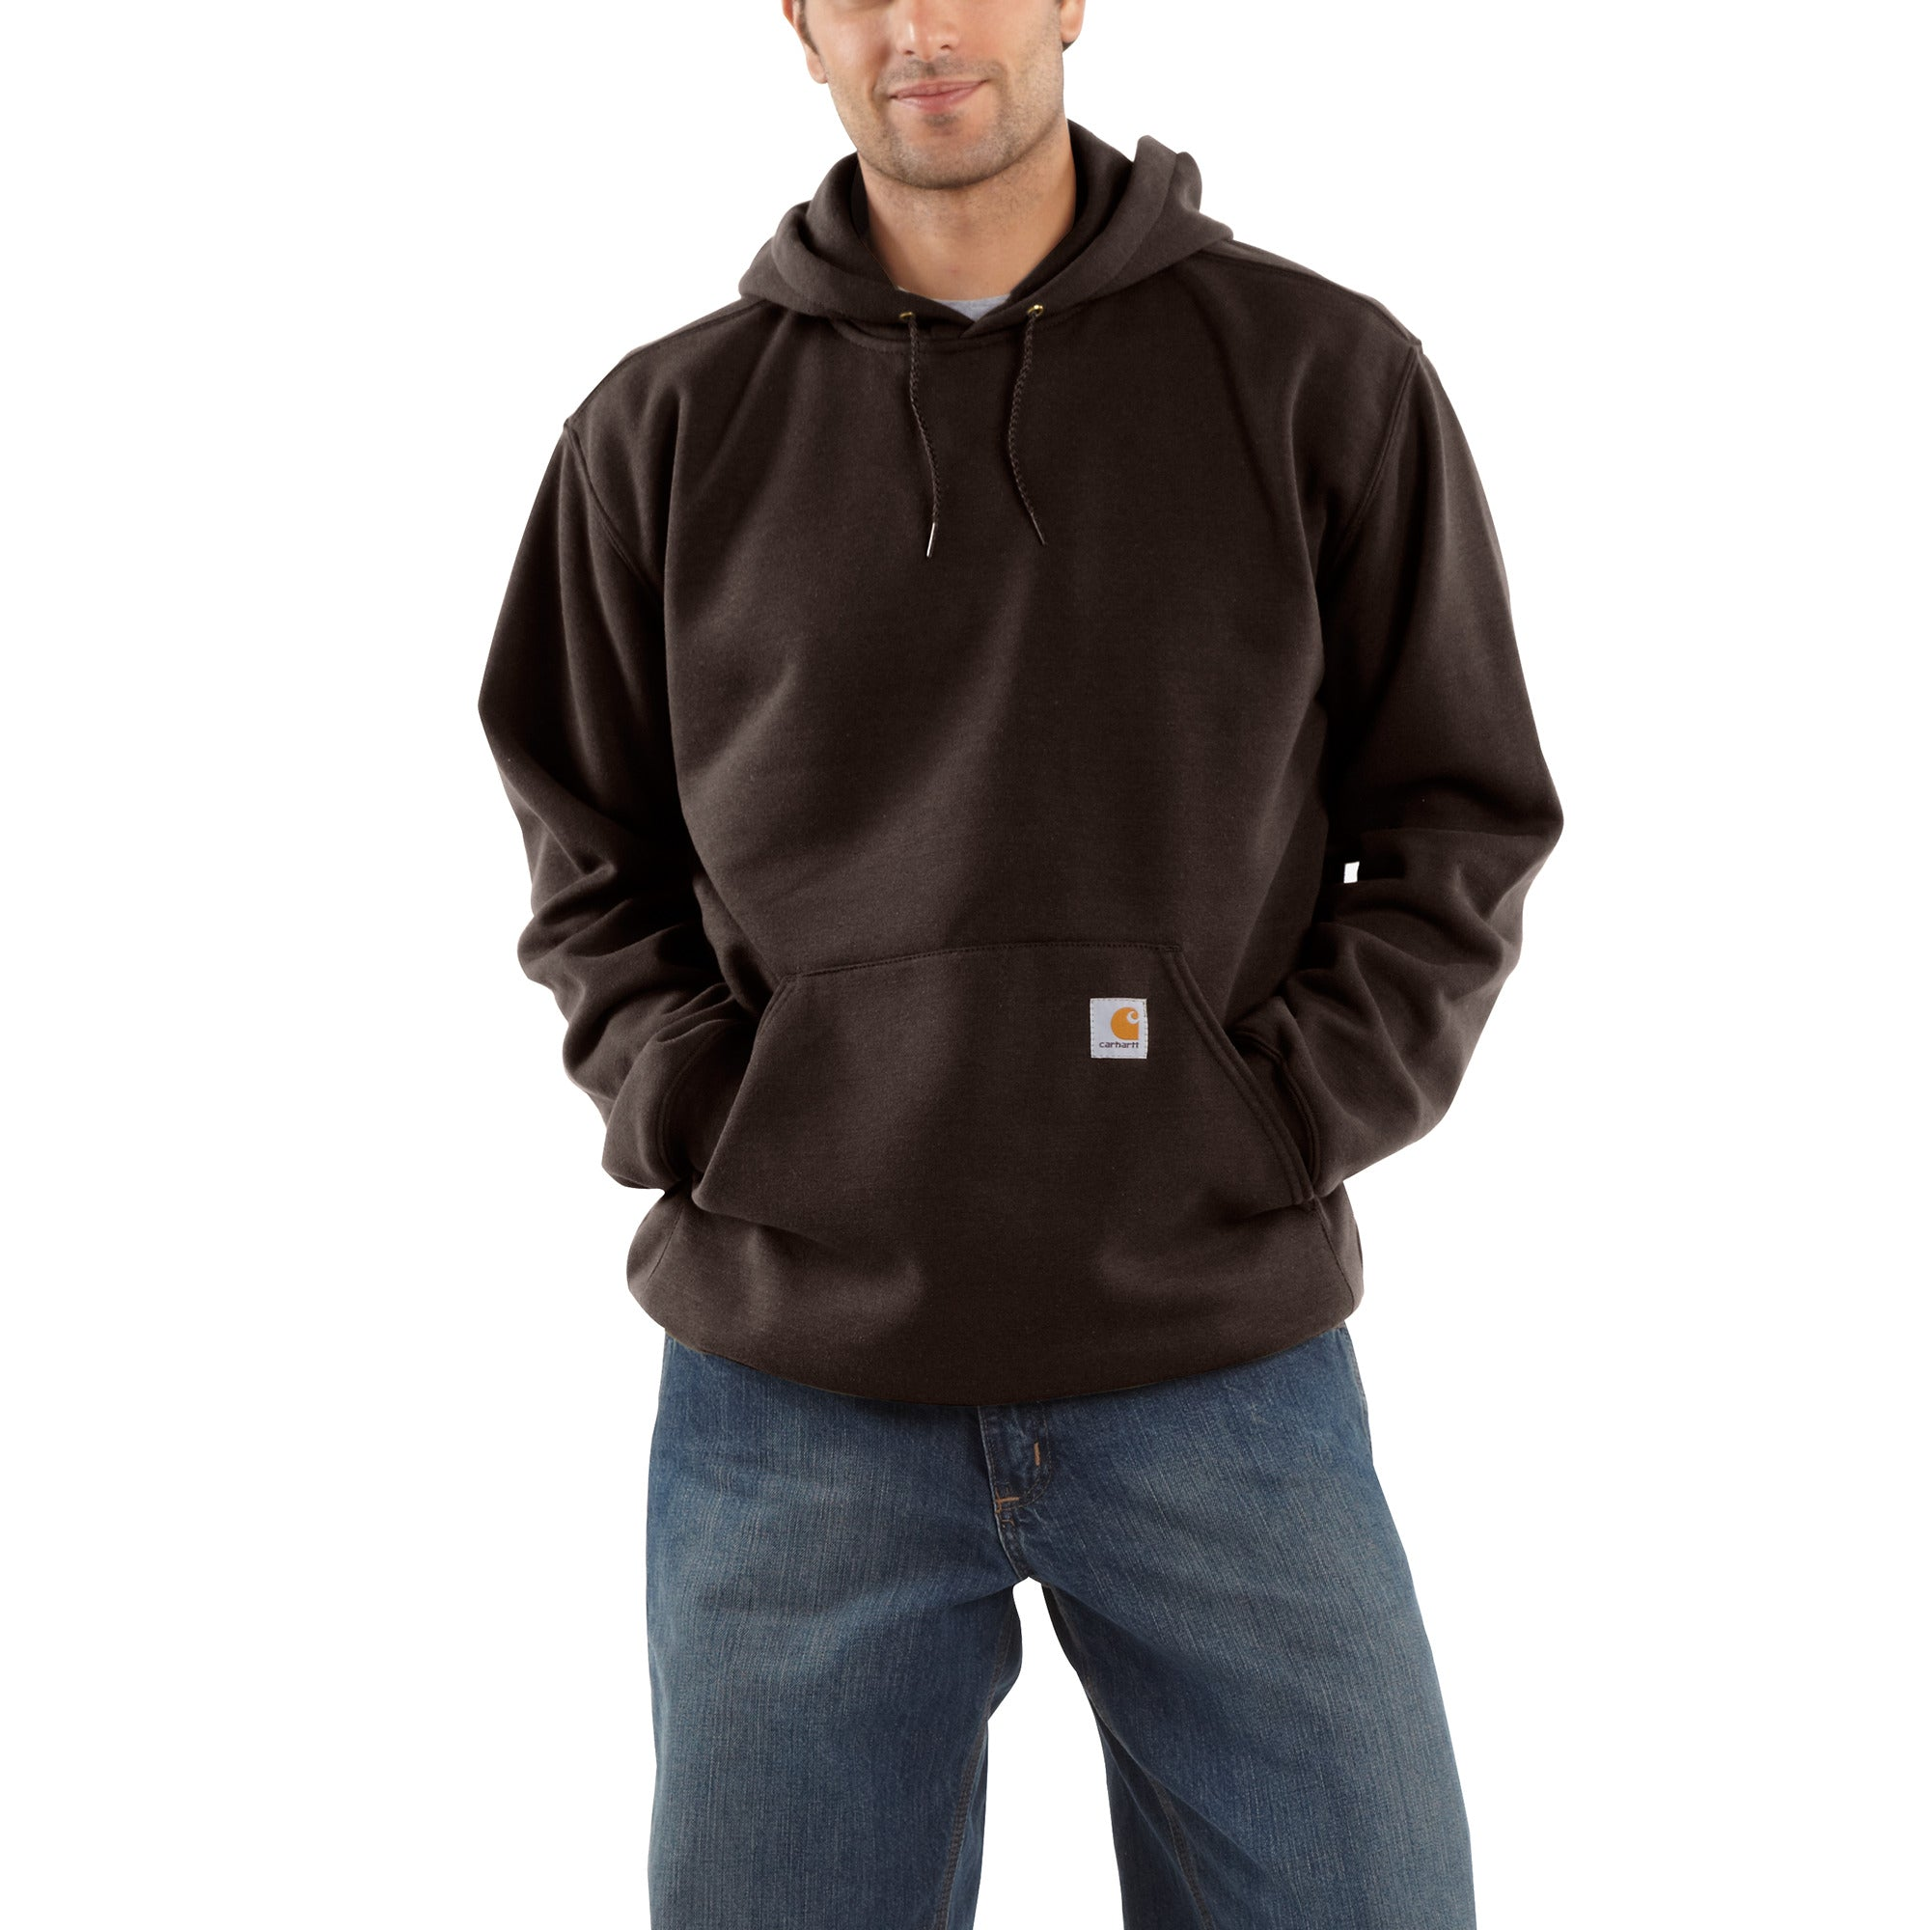 'Carhartt' Men's Midweight Pullover Hoodie - Dark Brown